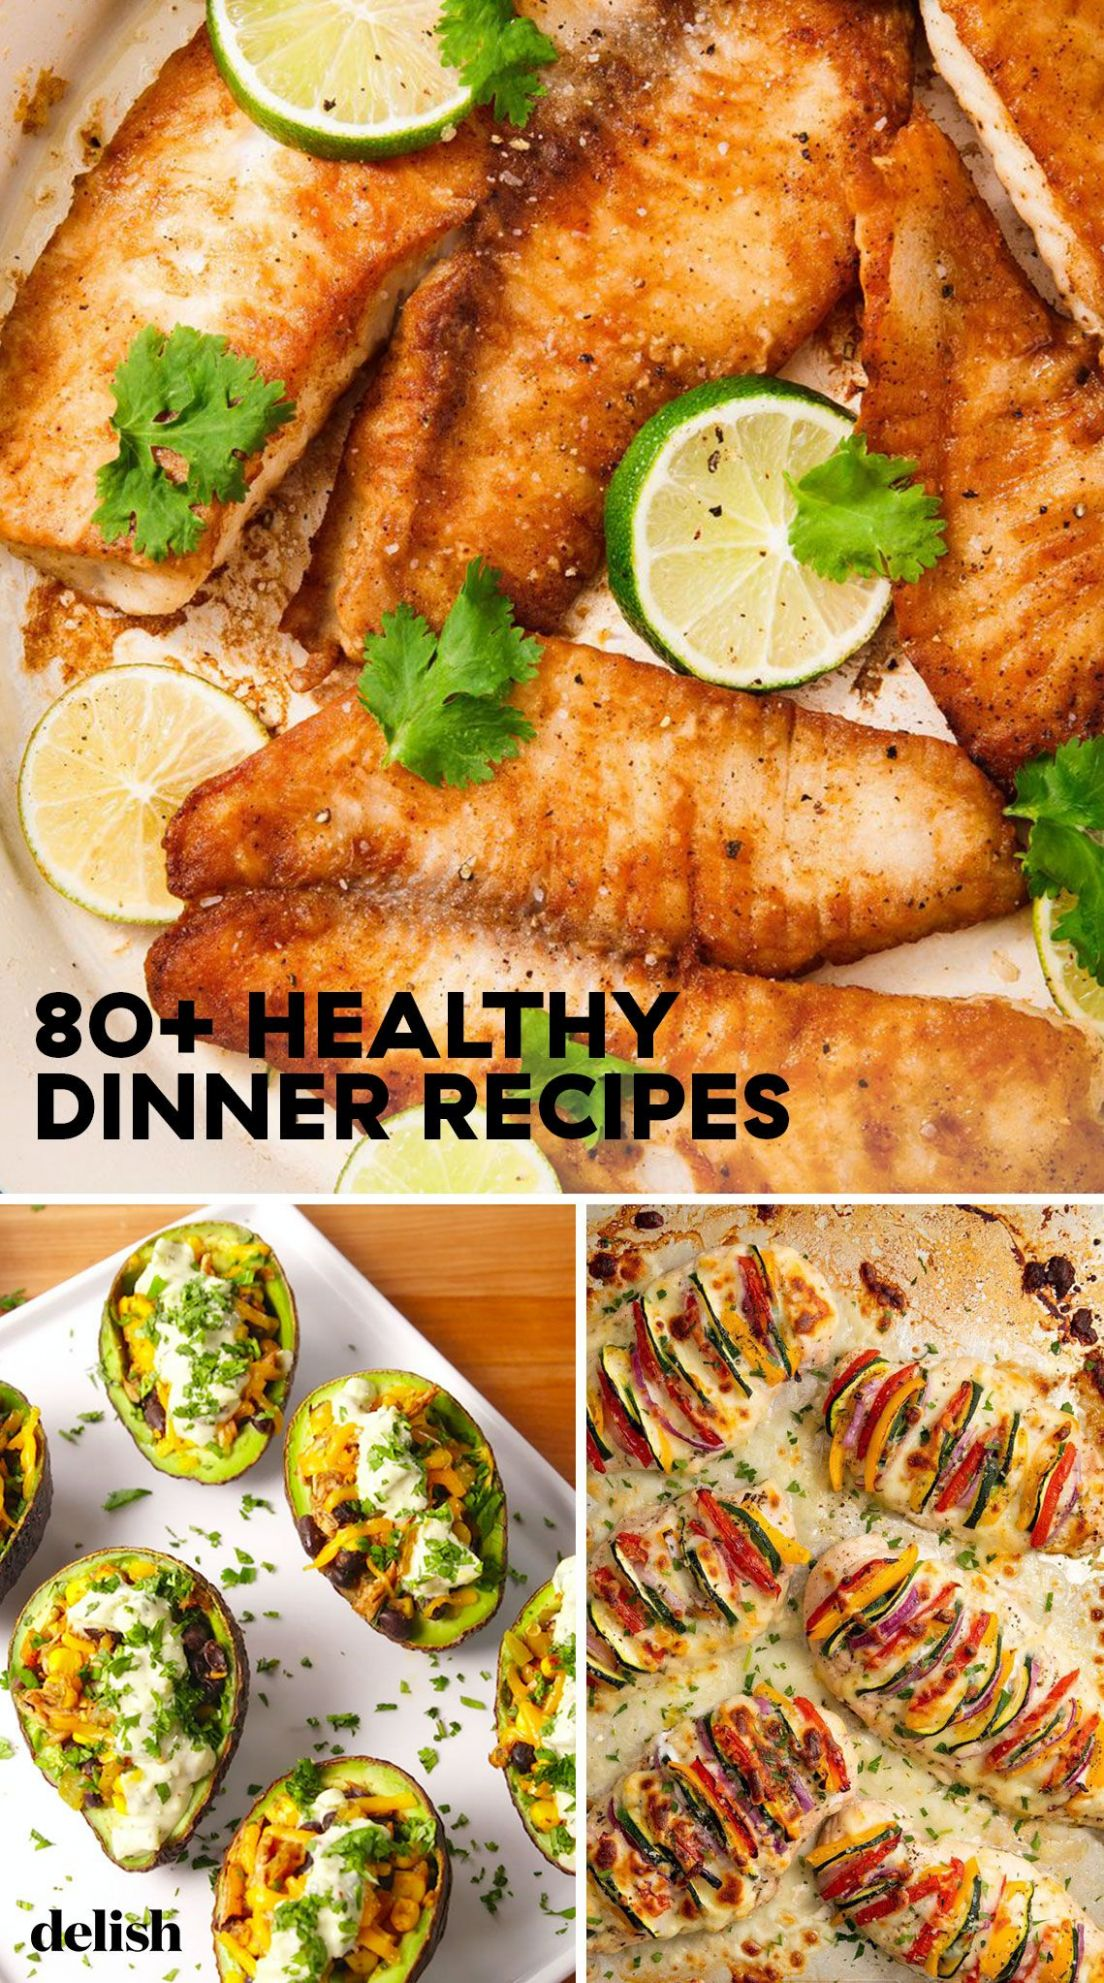 11+ Easy Healthy Dinner Ideas - Best Recipes for Healthy Dinners - Healthy Recipes To Cook